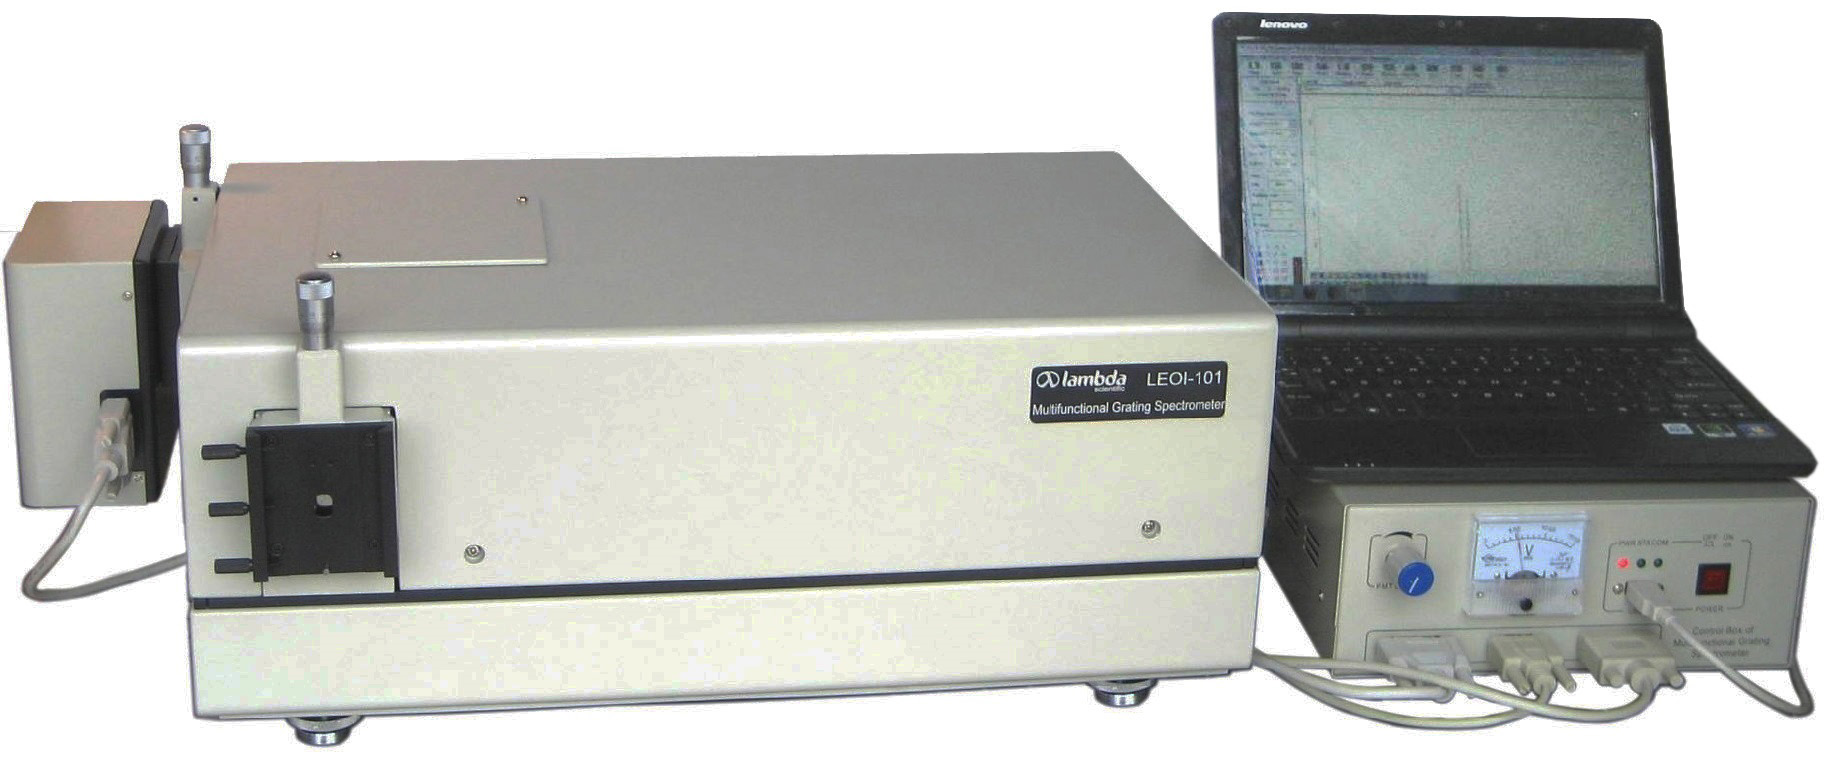 LEOI-101 Modular Multifunctional Grating Spectrometer